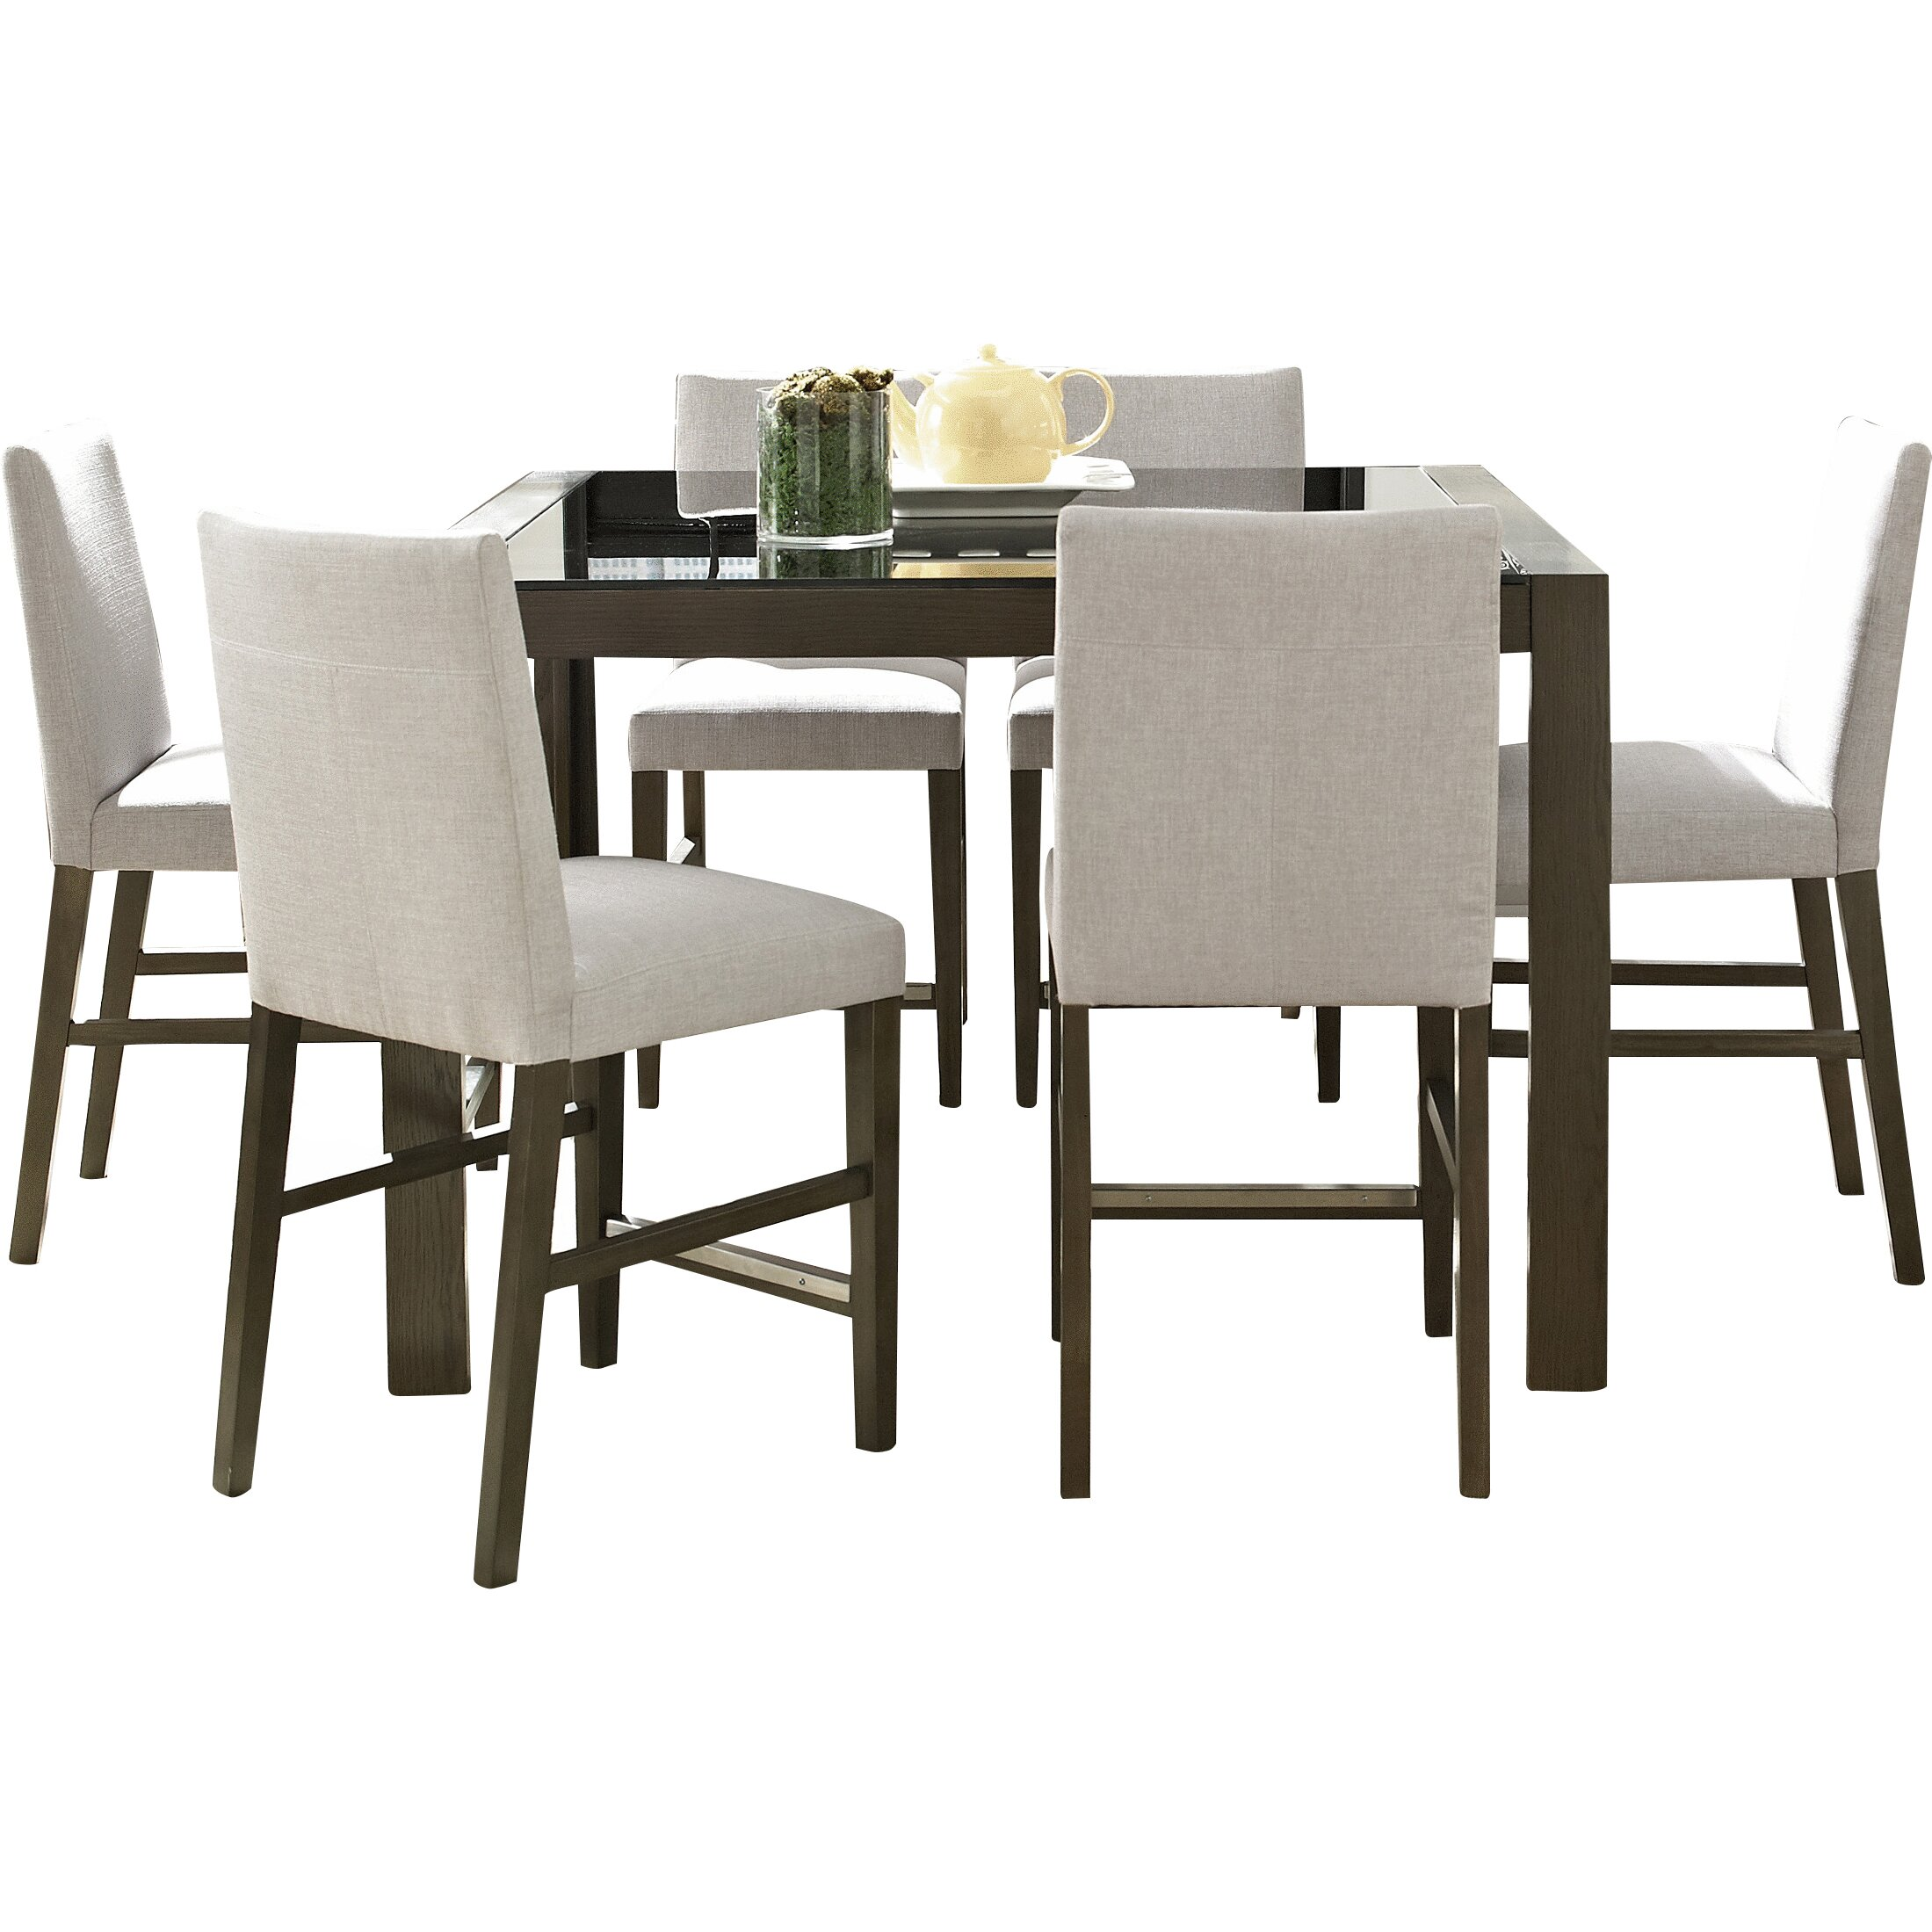 Brayden studio north stoke 7 piece counter height dining for 7 piece dining set